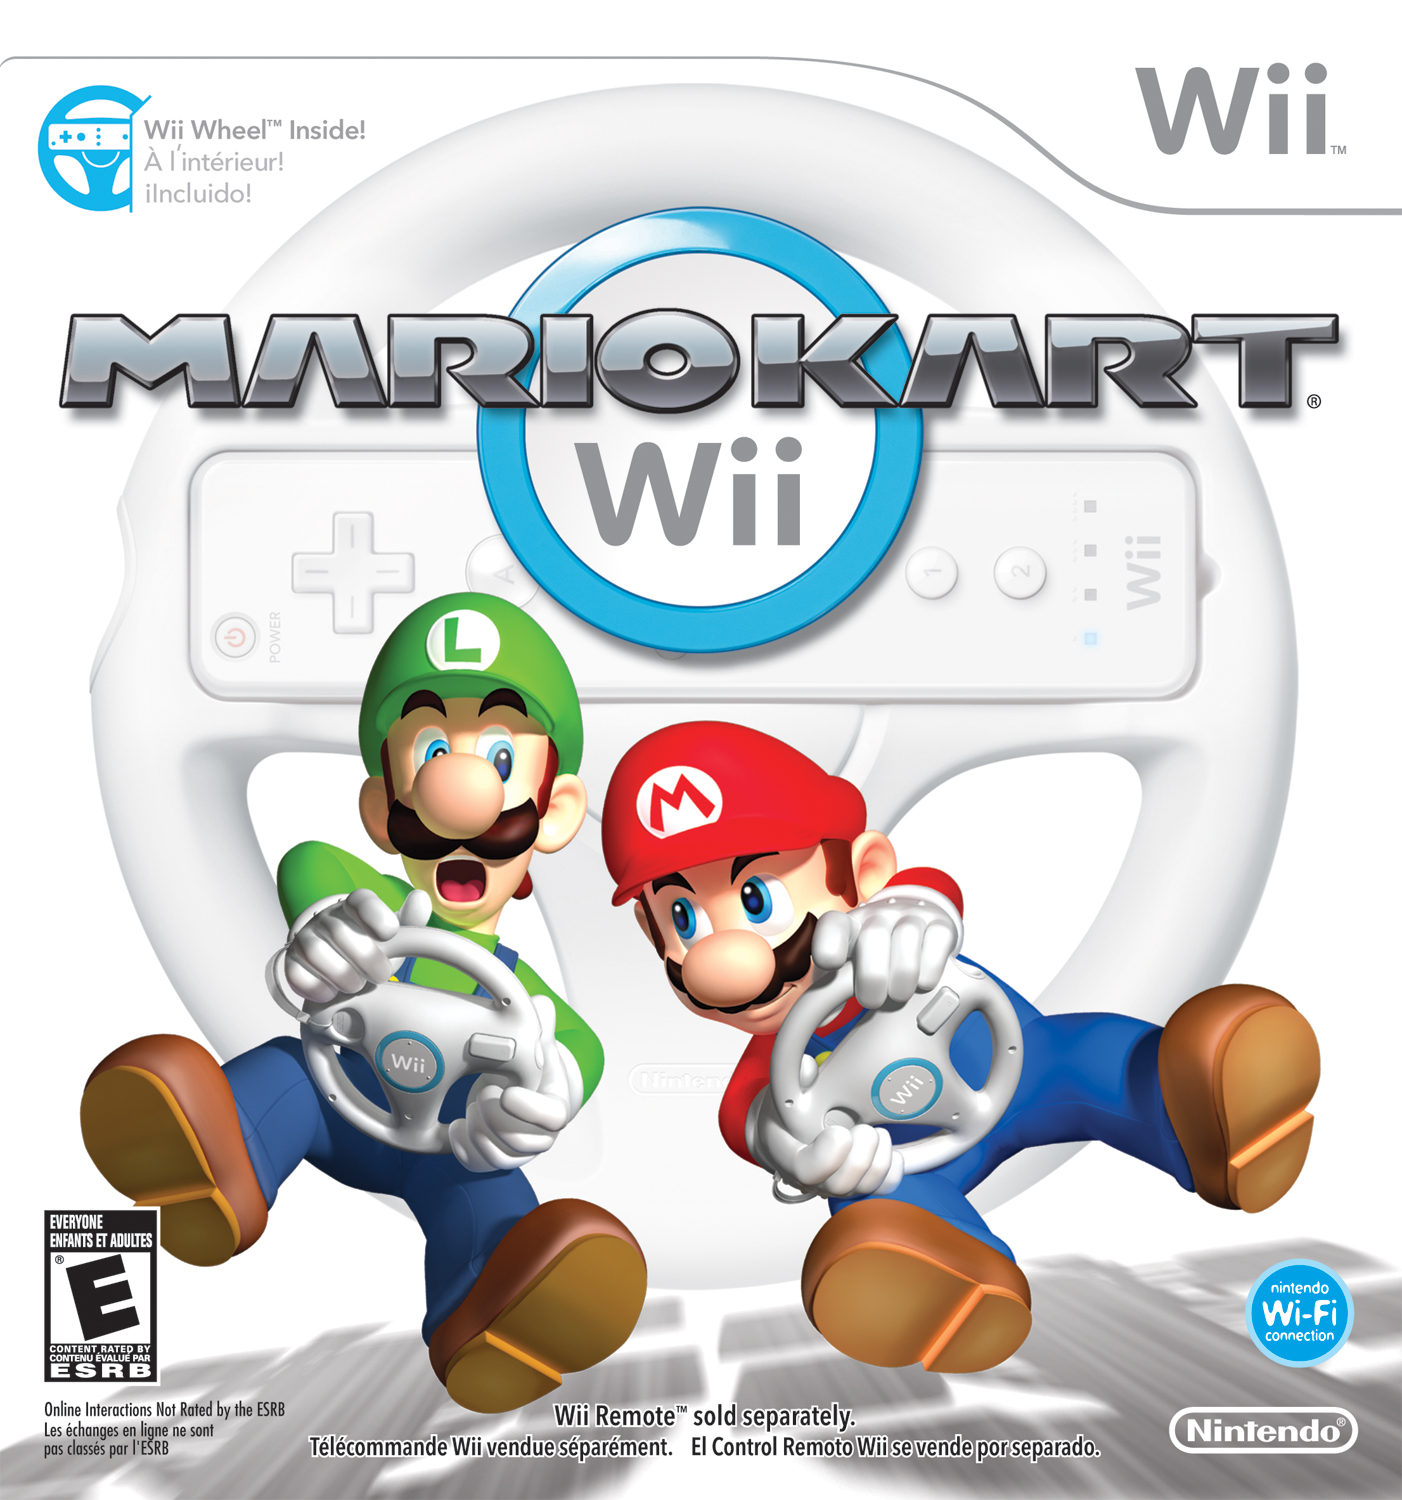 Nintendo Mario Kart Wii with Wii Wheel Official Wii Wheel Included